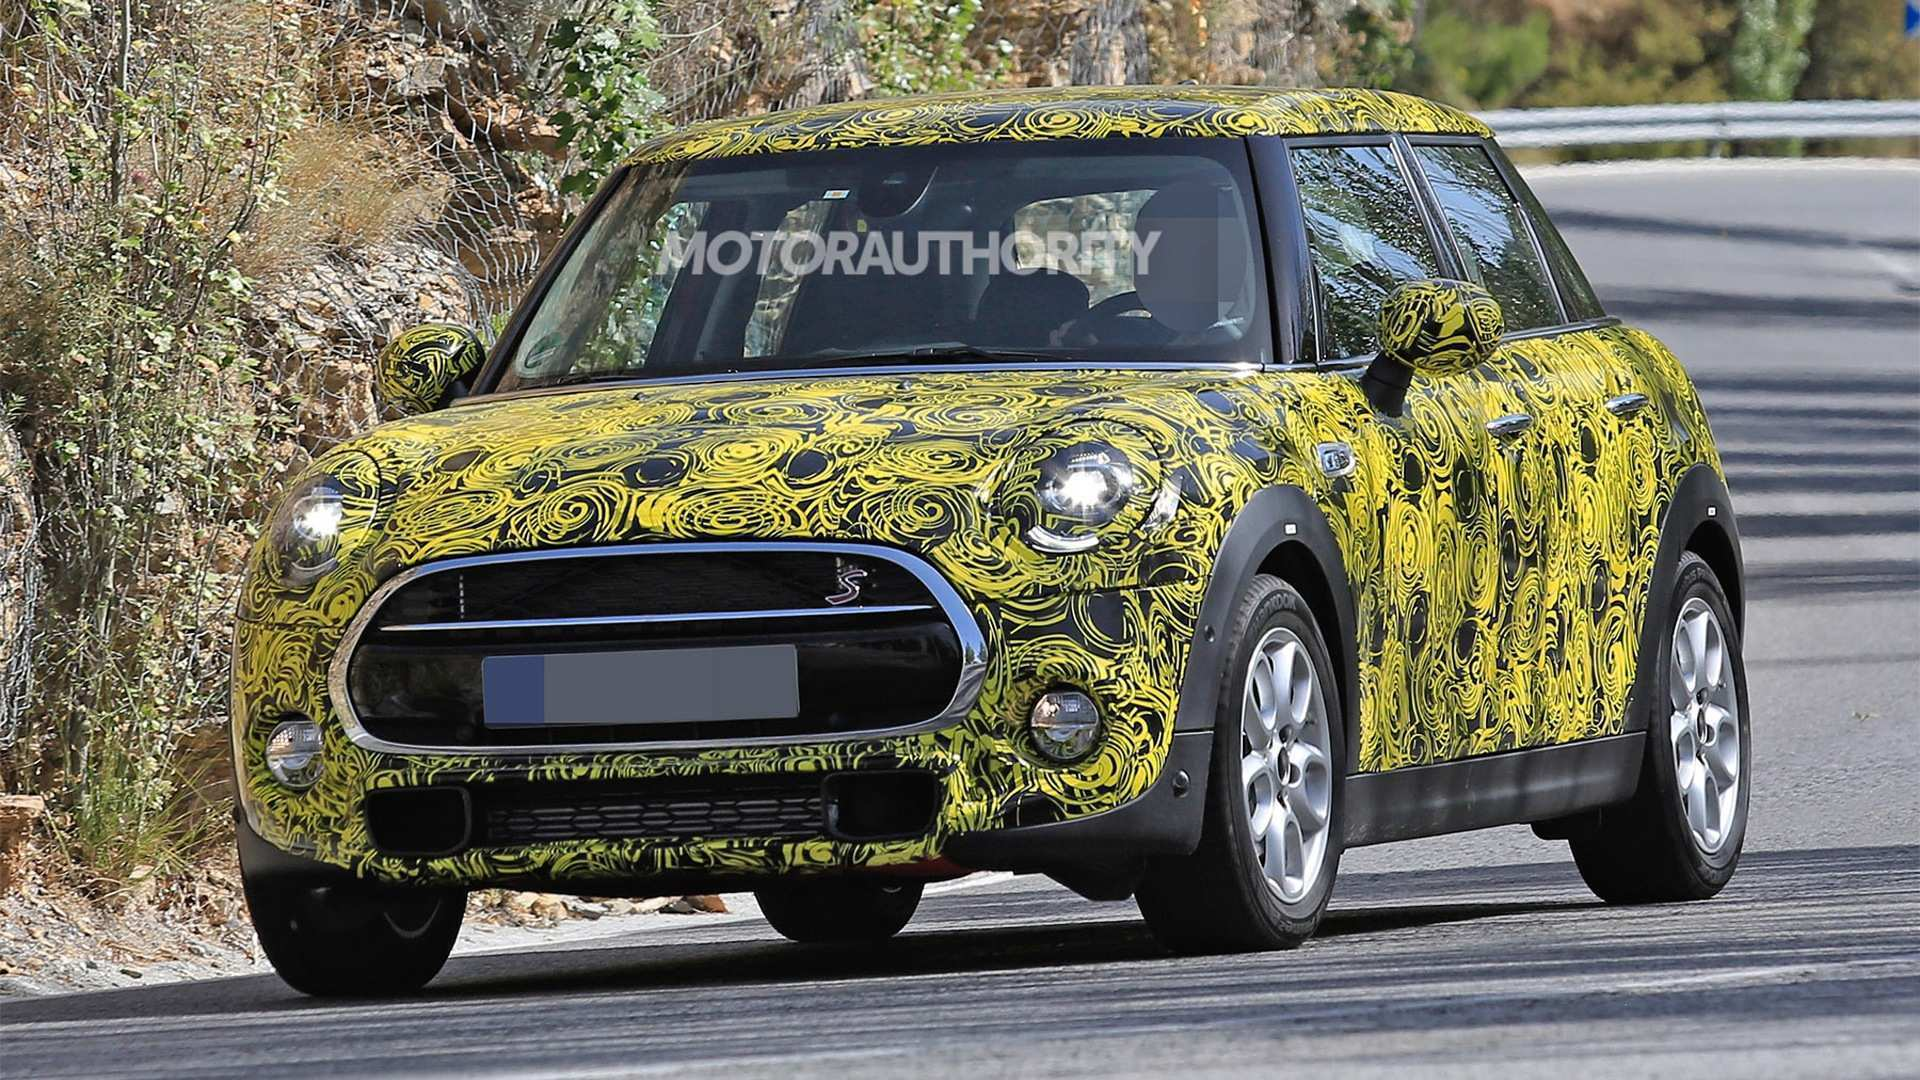 92 Gallery of 2019 Mini Cooper Spy Shots Ratings for 2019 Mini Cooper Spy Shots